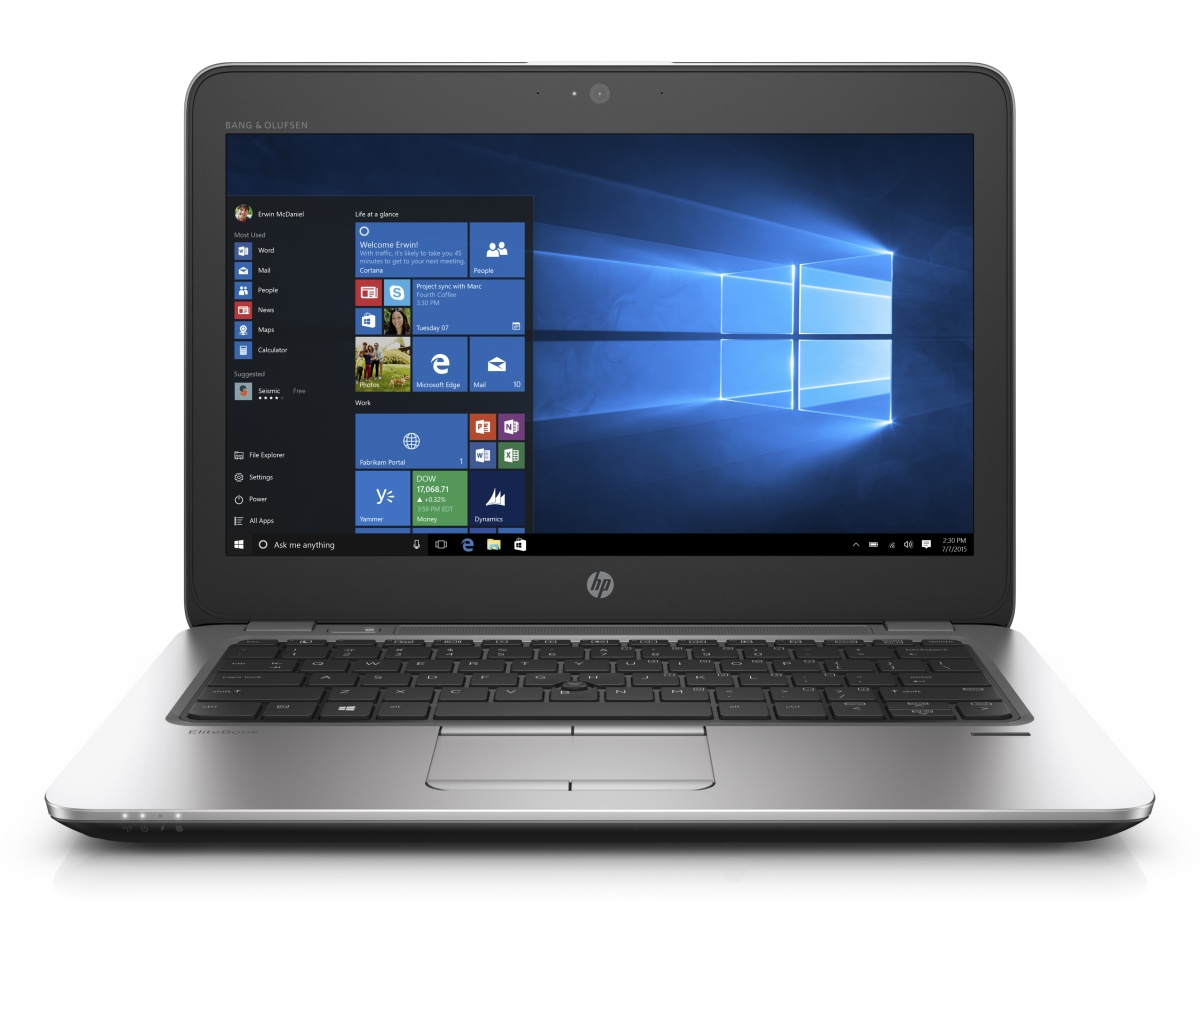 HP EliteBook 820 G3 12.5'' FHD /i5-6200U/4GB/256SSD/WIFI/BT/MCR/FPR/3RServis/7+1